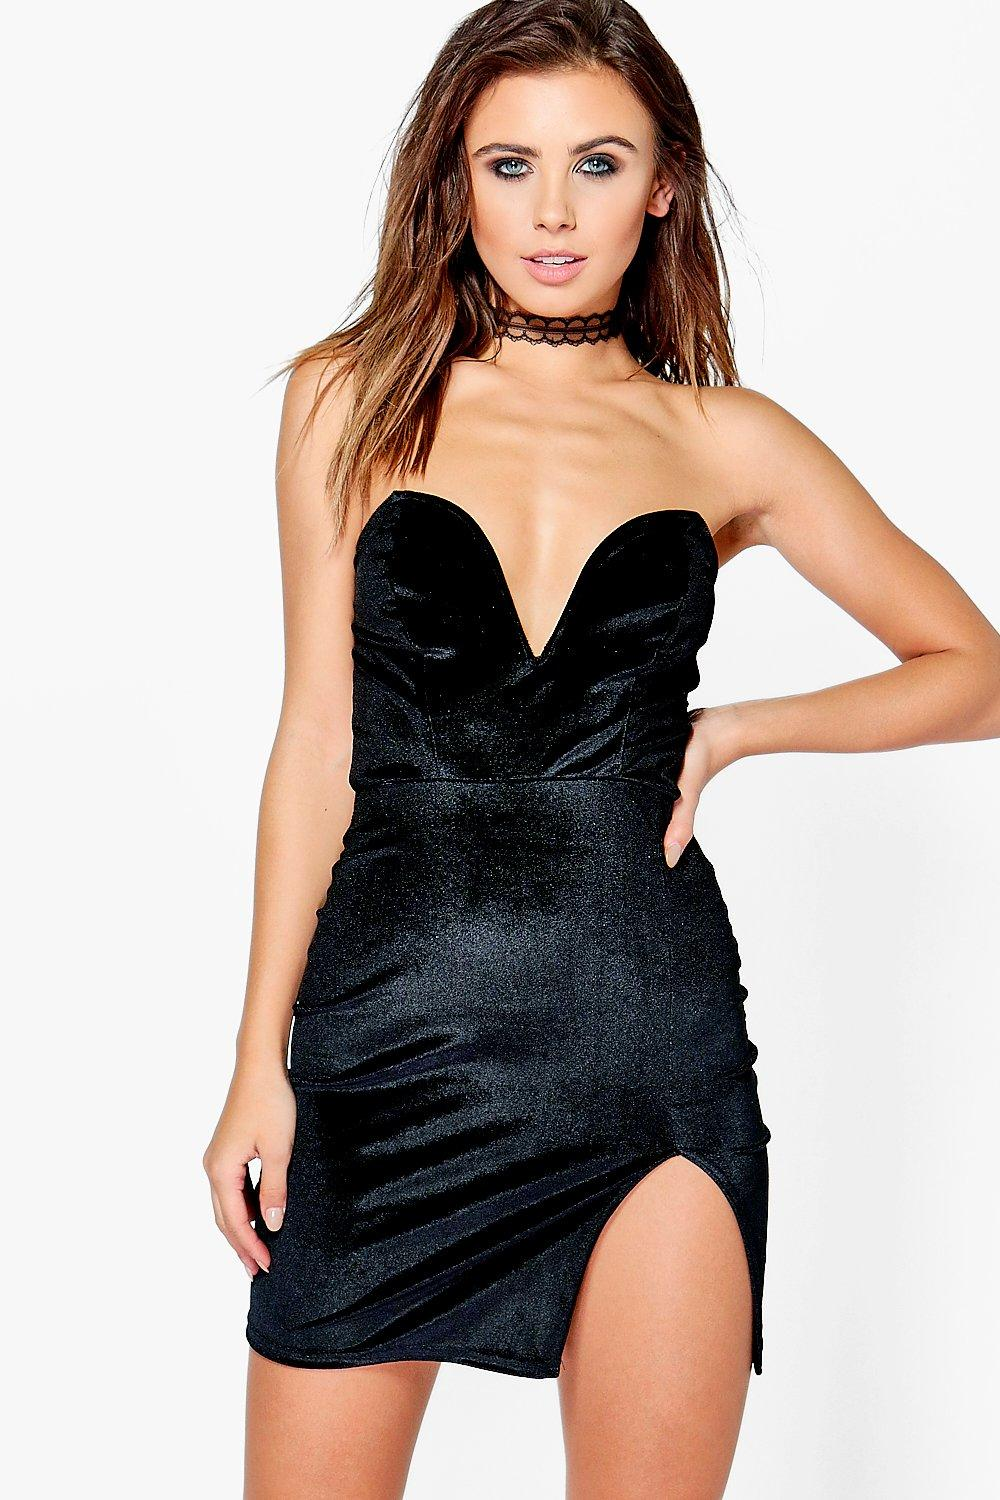 Petite Kasey Plunge Velvet Mini Bodycon Dress